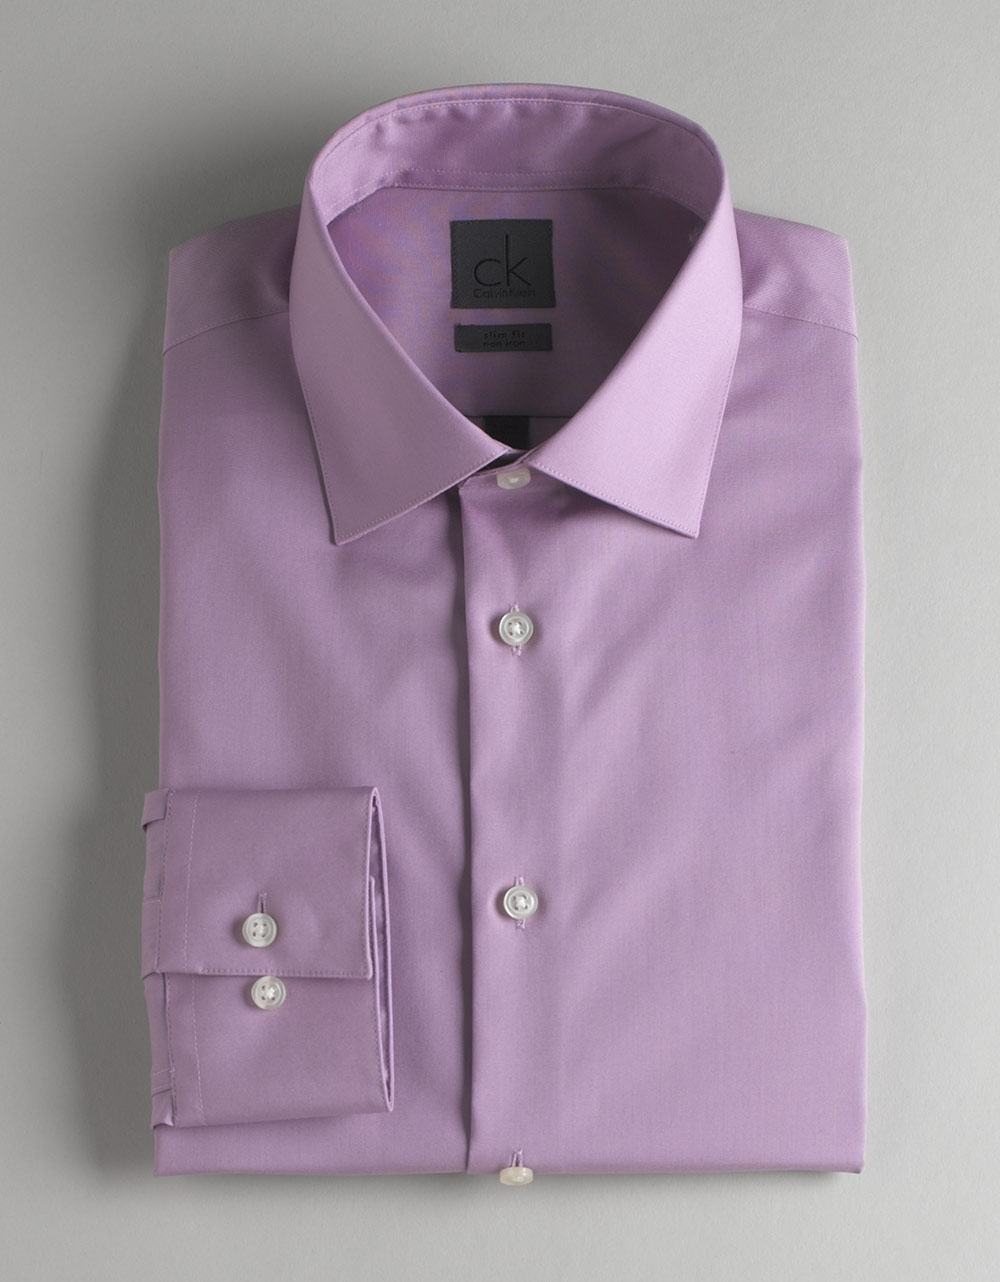 Ck calvin klein non iron dress shirt in purple for men Light purple dress shirt men